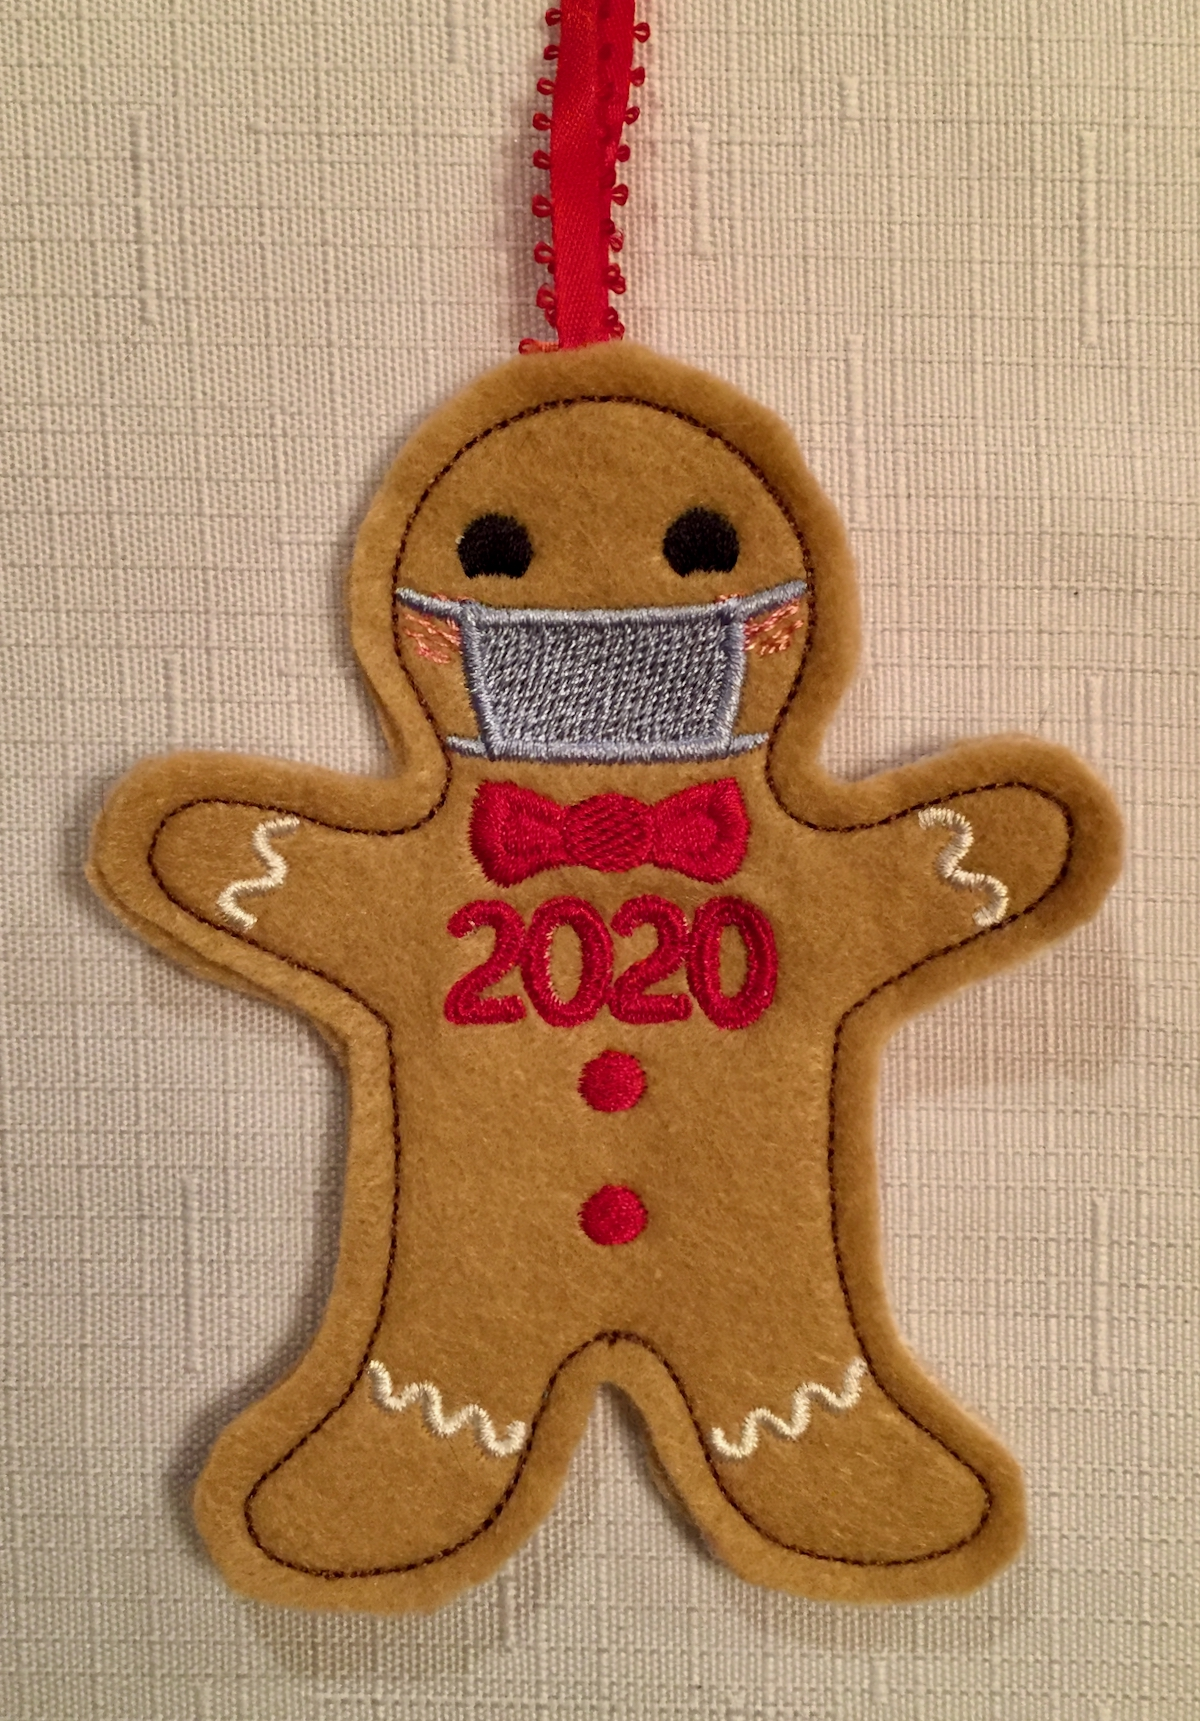 2020 gingerbread man - 1